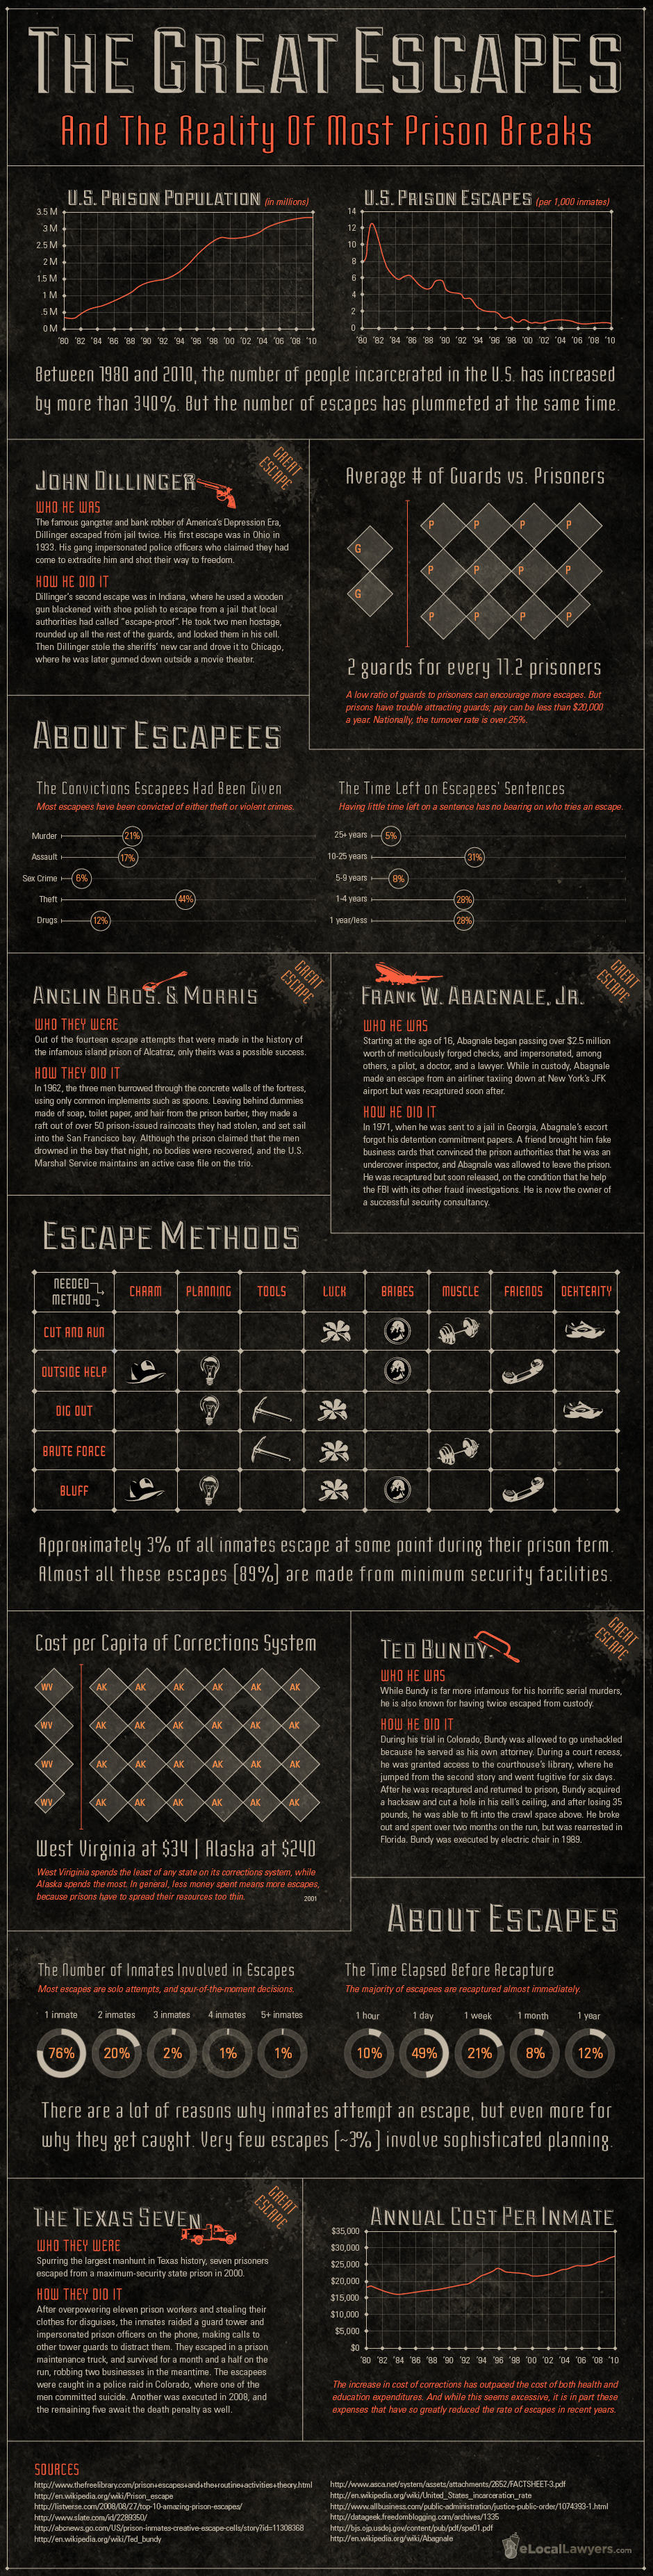 Great Prison Escapes InfoGraphic